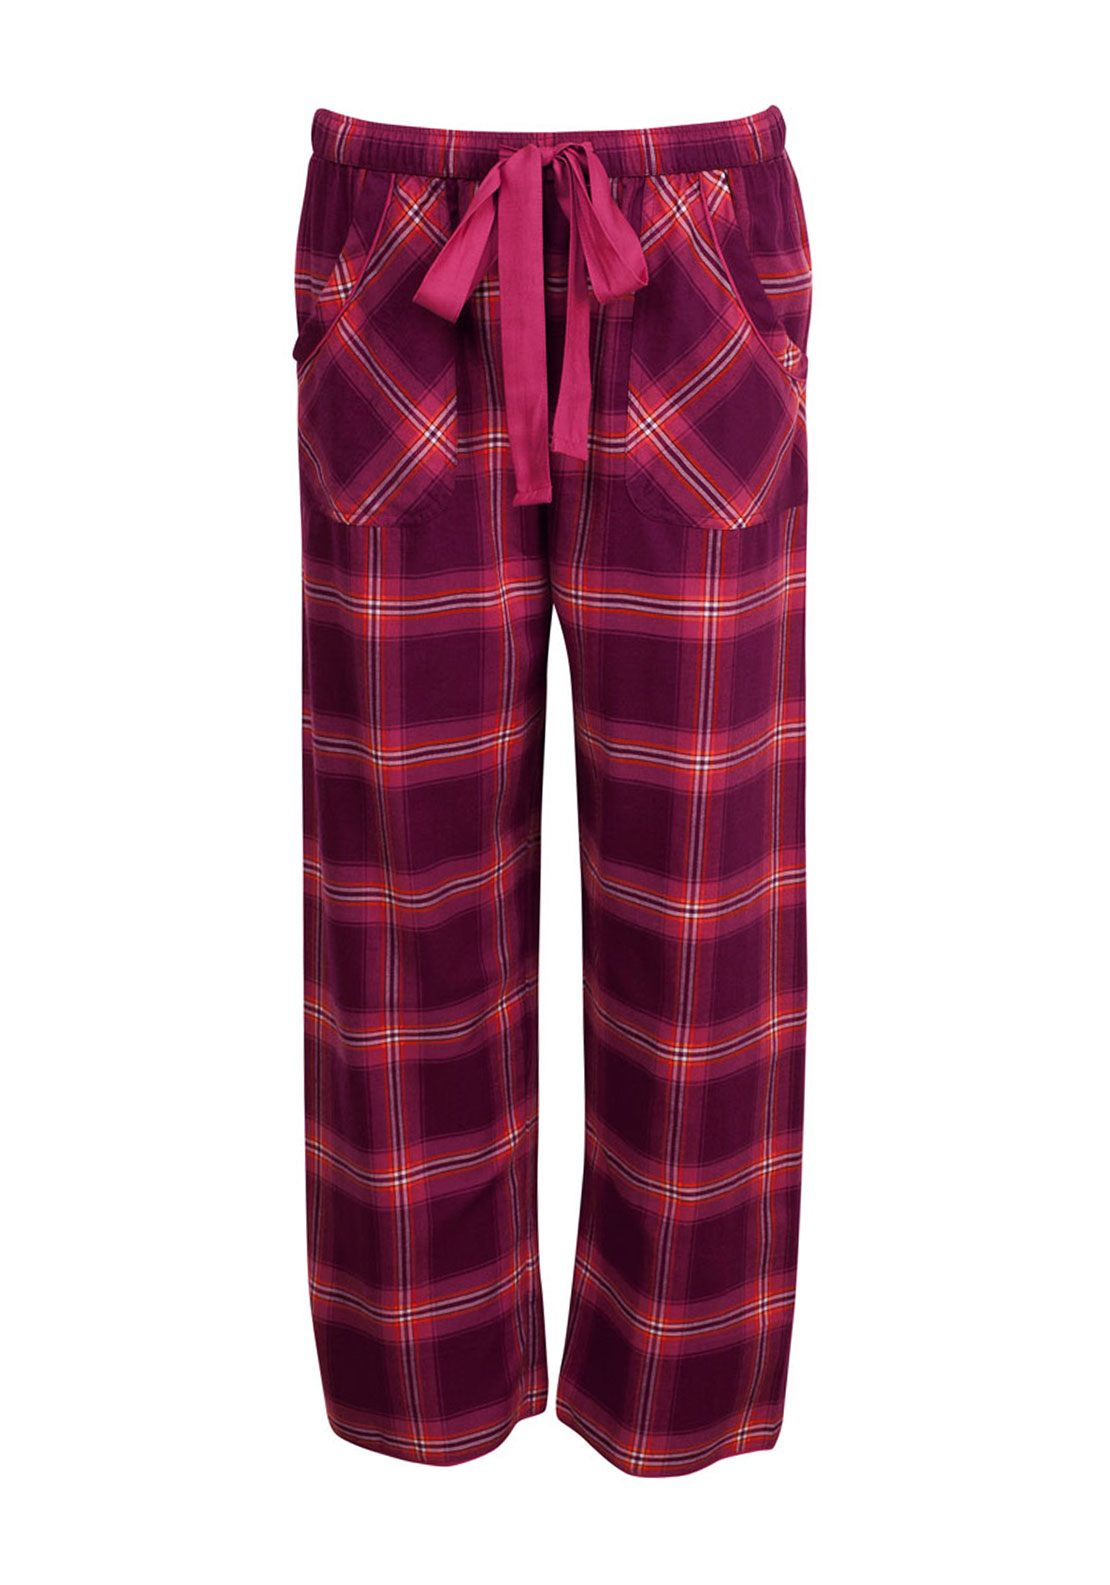 Cyberjammies Deck The Halls Checked Pyjama Bottoms, Wine